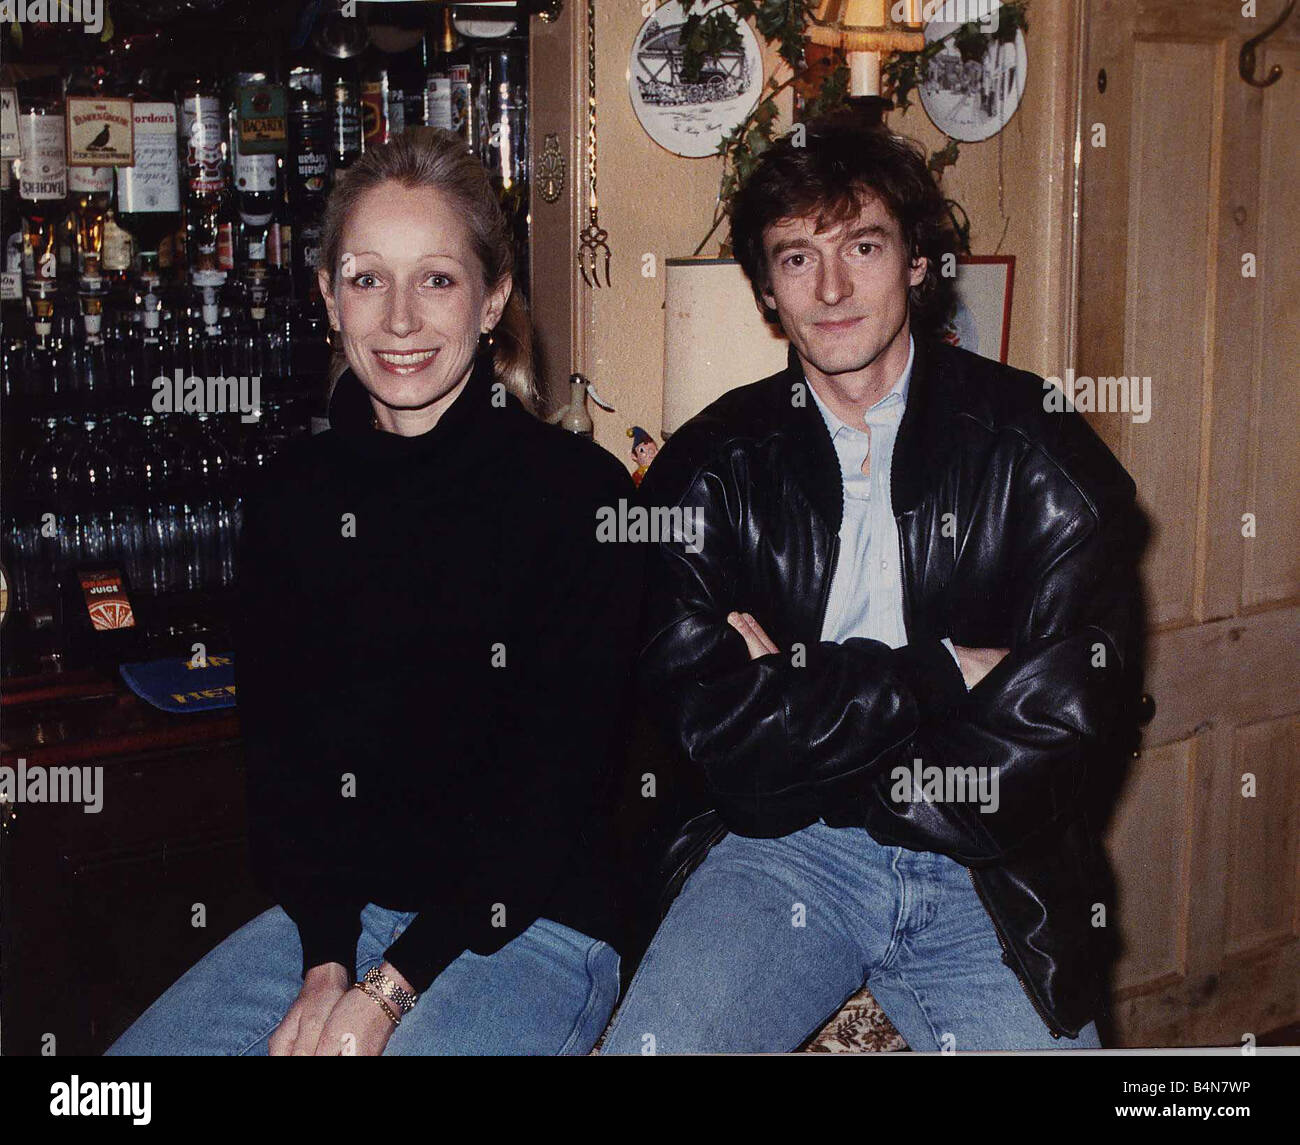 Nigel Havers Actor With Polly Bloomfield January 1989